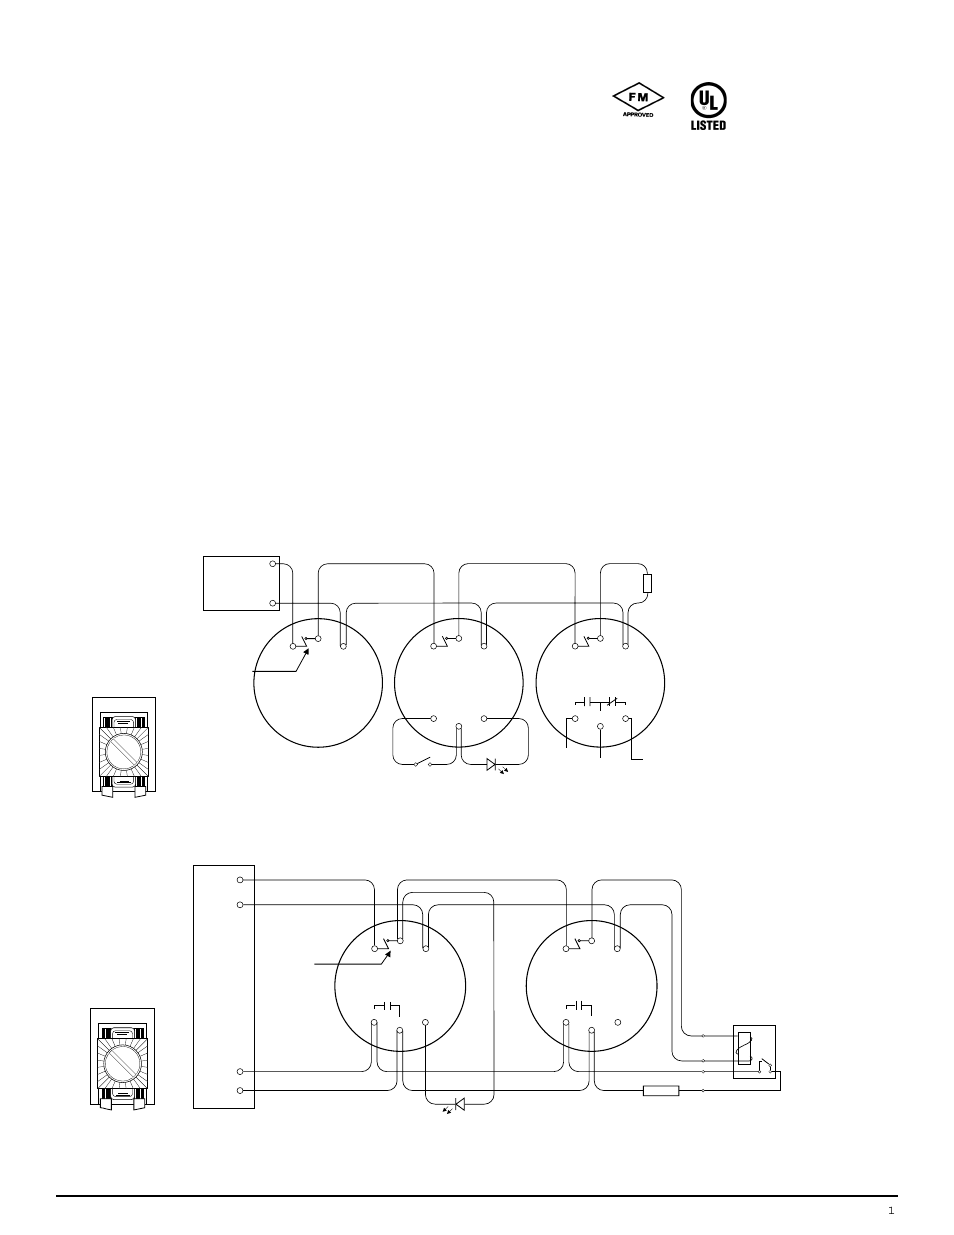 Edwards Signaling Connection Diagrams Wiring Diagram For Light Transformers Esl 700 Series User Manual 4 Pages Rh Manualsdir Com Horn Strobe Company